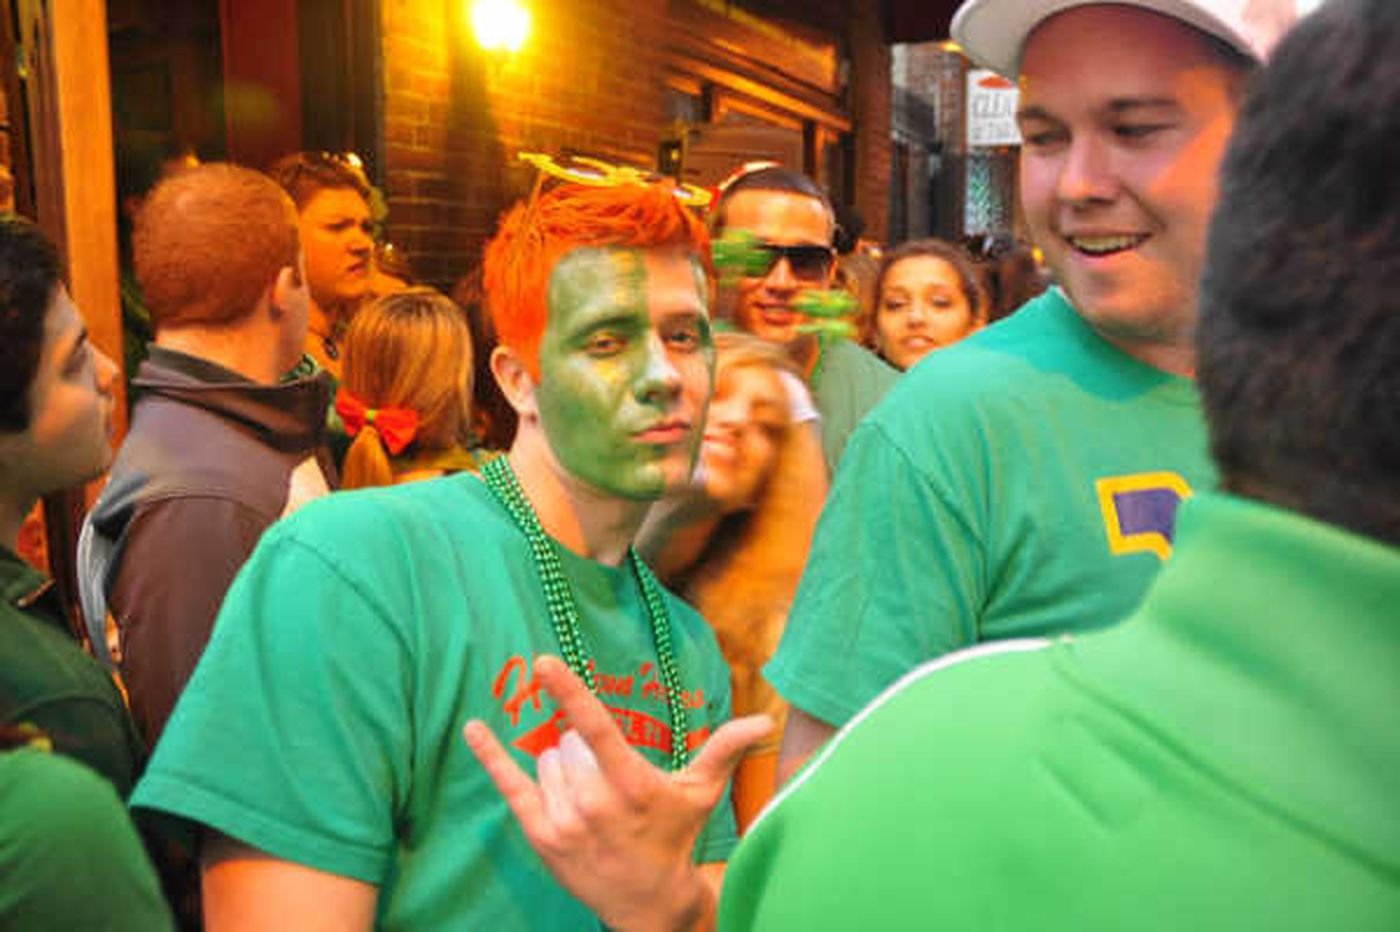 Erin Express, Irish Exit and 9 other ways to celebrate St. Patrick's Day in Philly